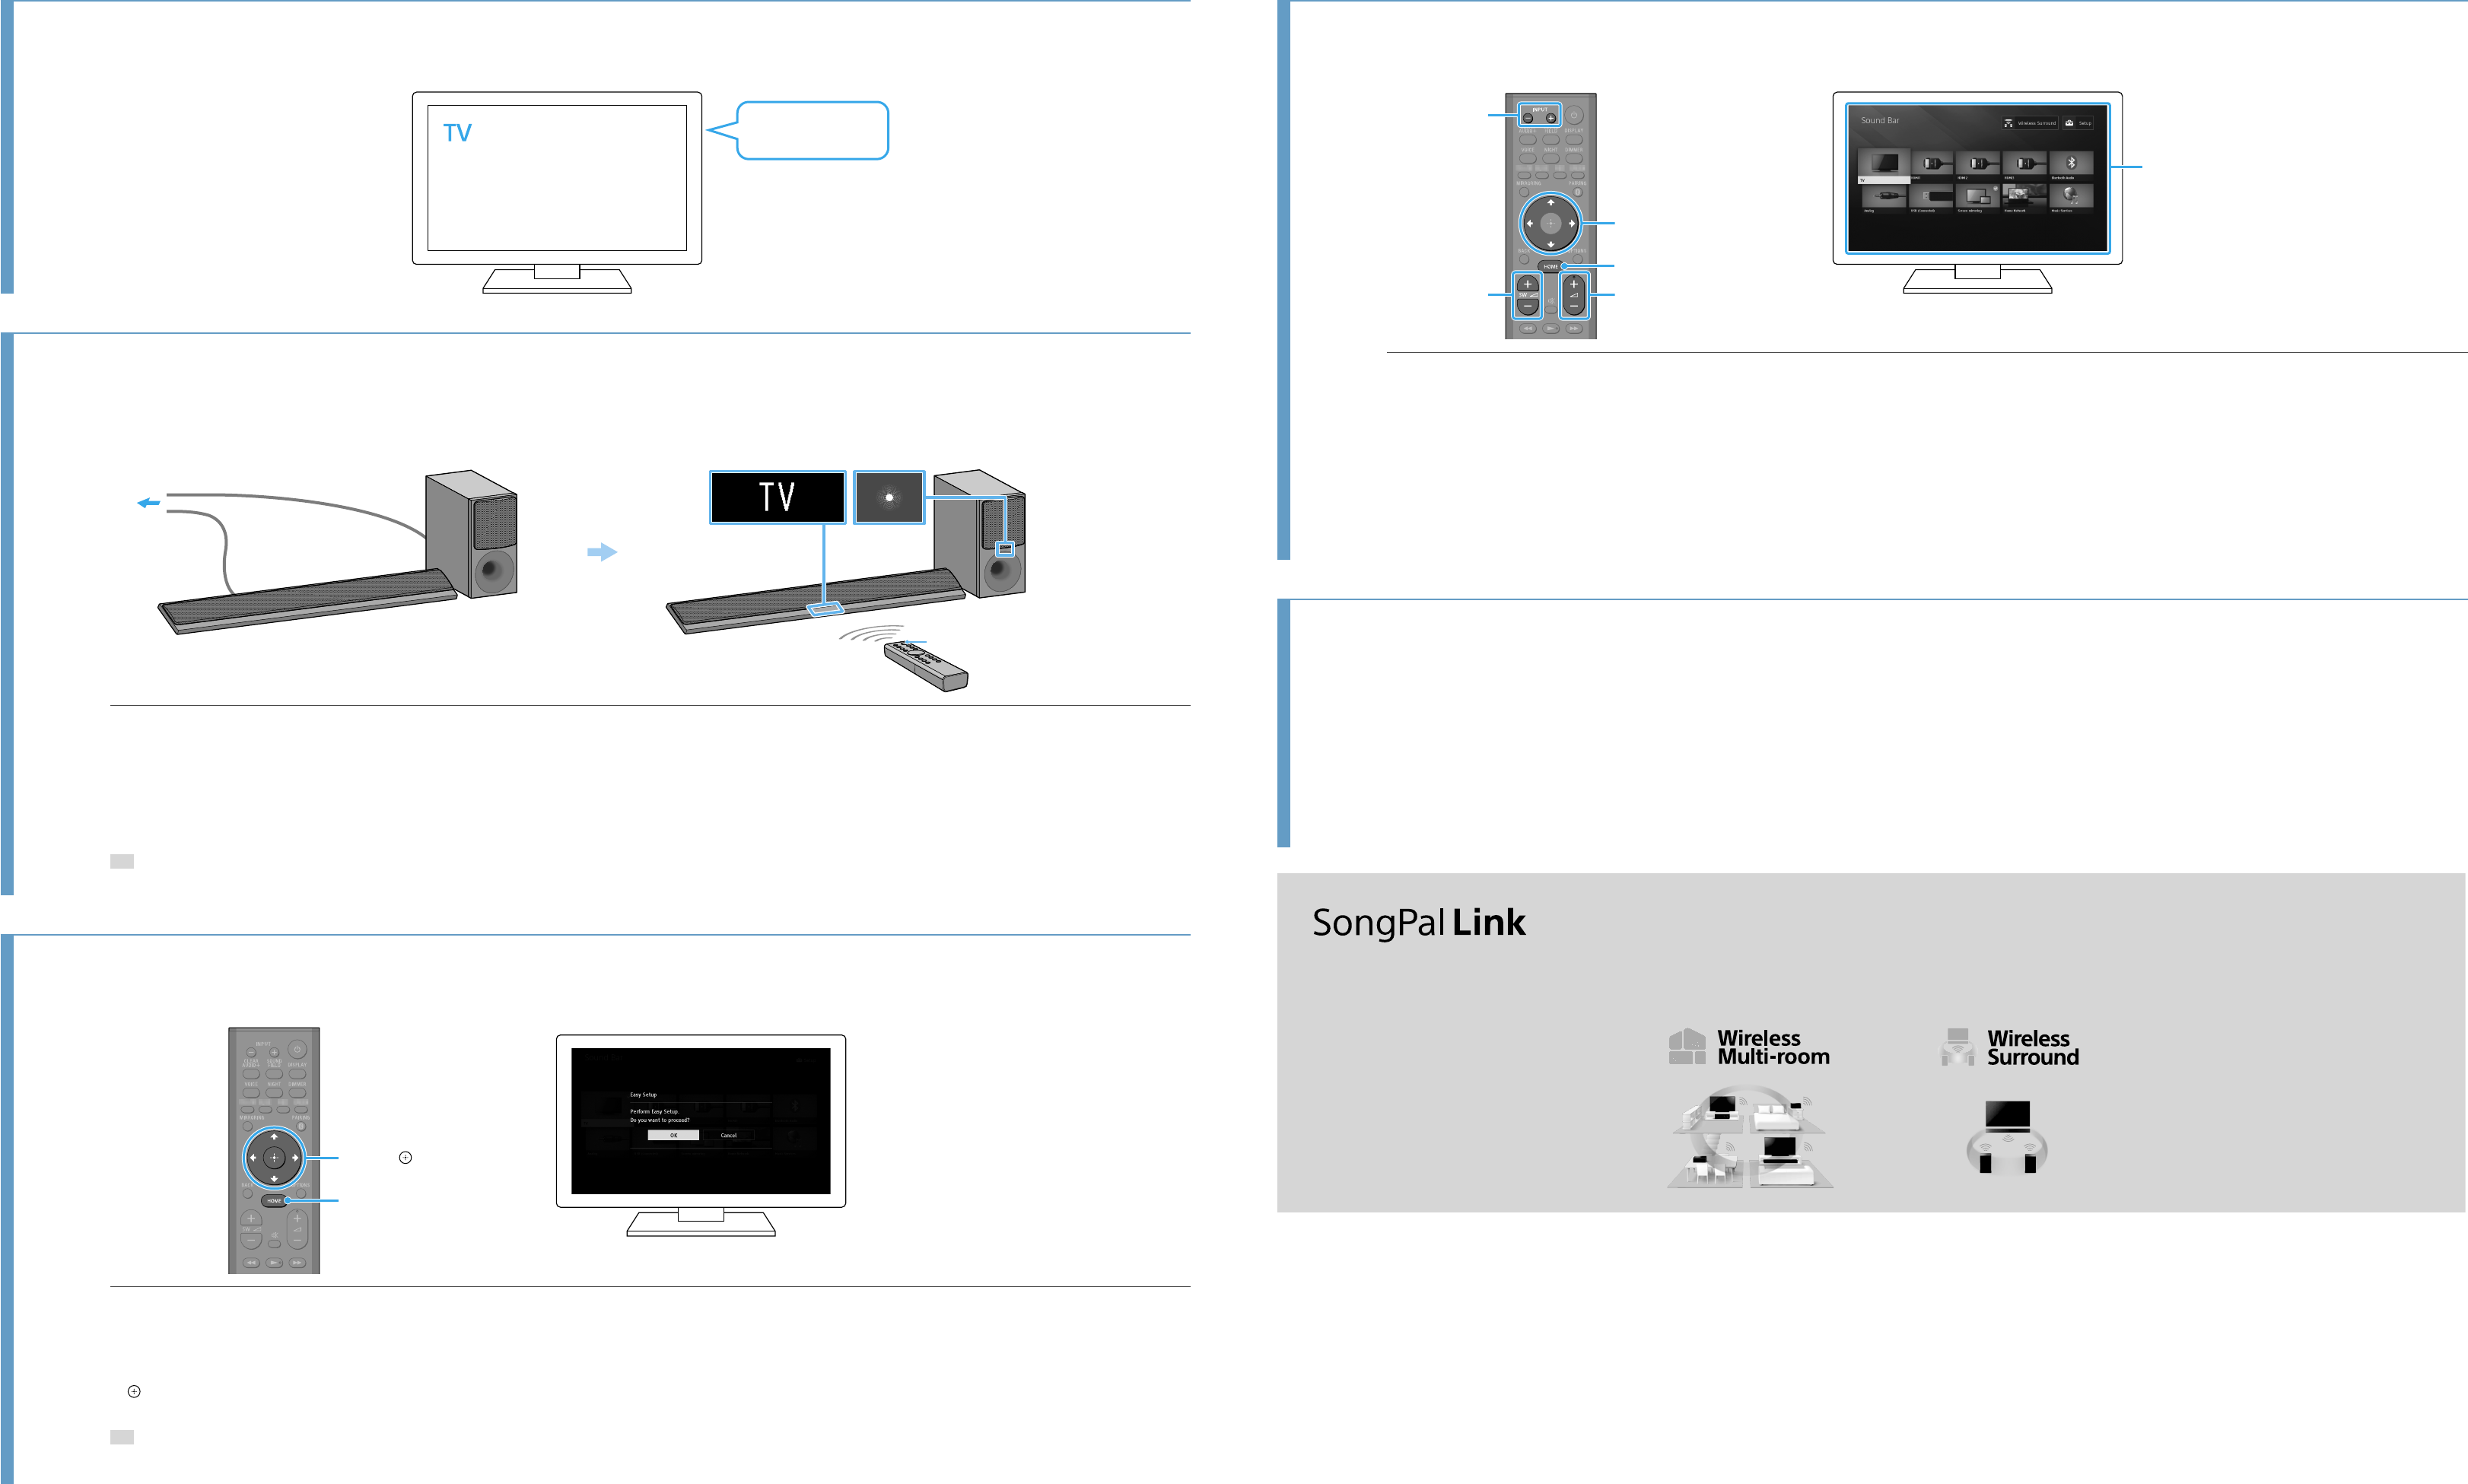 Sony Ht Ct790 User Manual Startup Guide Qsg 4586047131 Sound Bar Wiring Diagram 5turning On The Tv